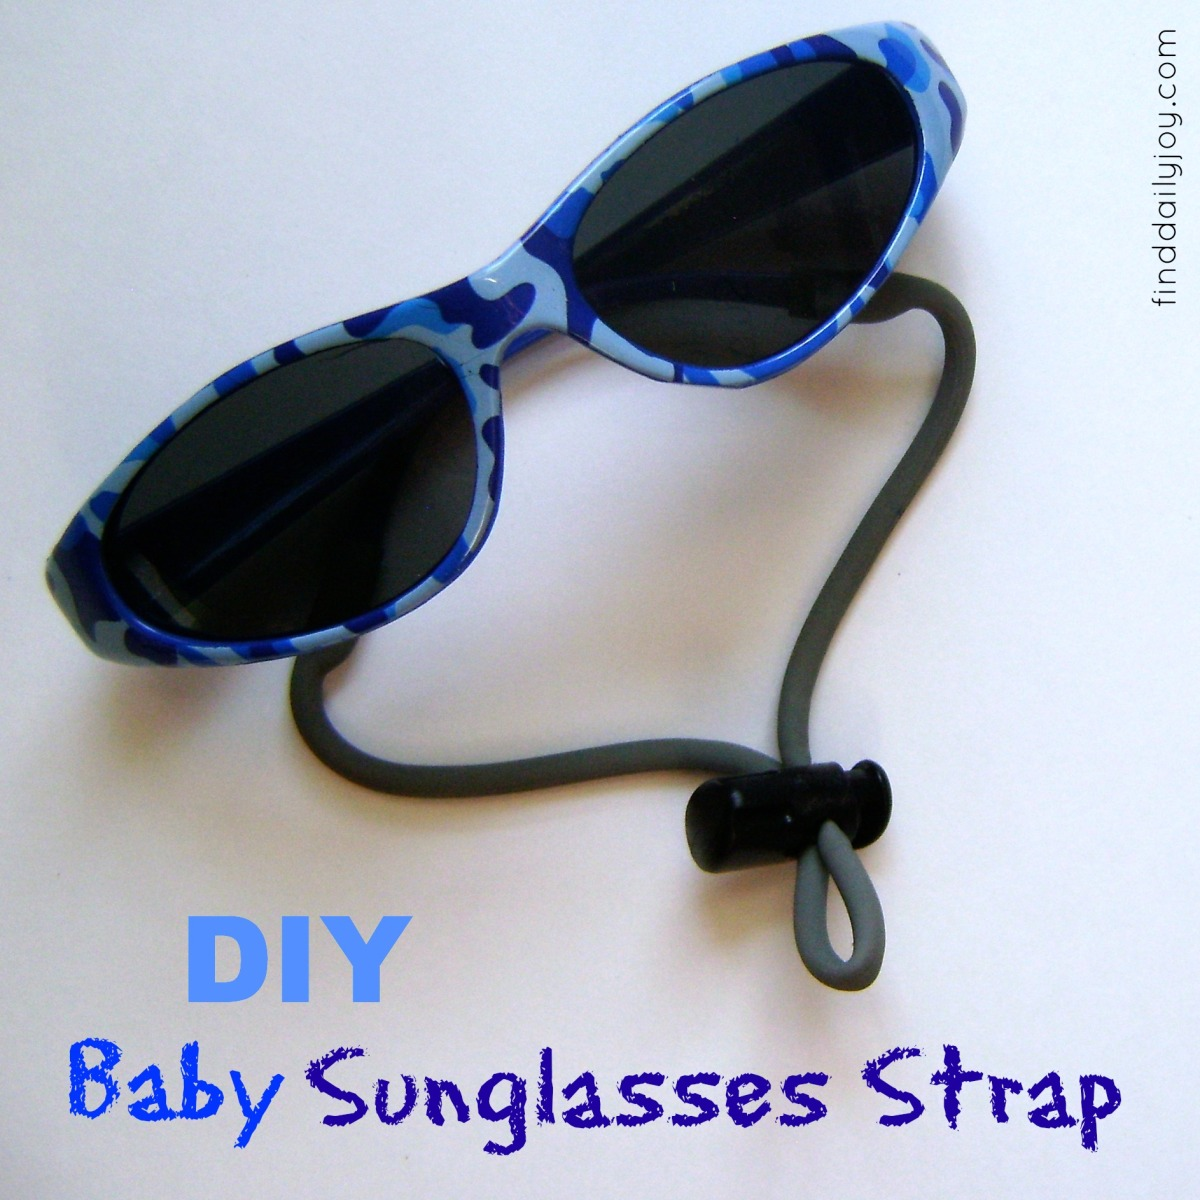 Make Your Own Baby Sunglasses Strap {Tutorial}